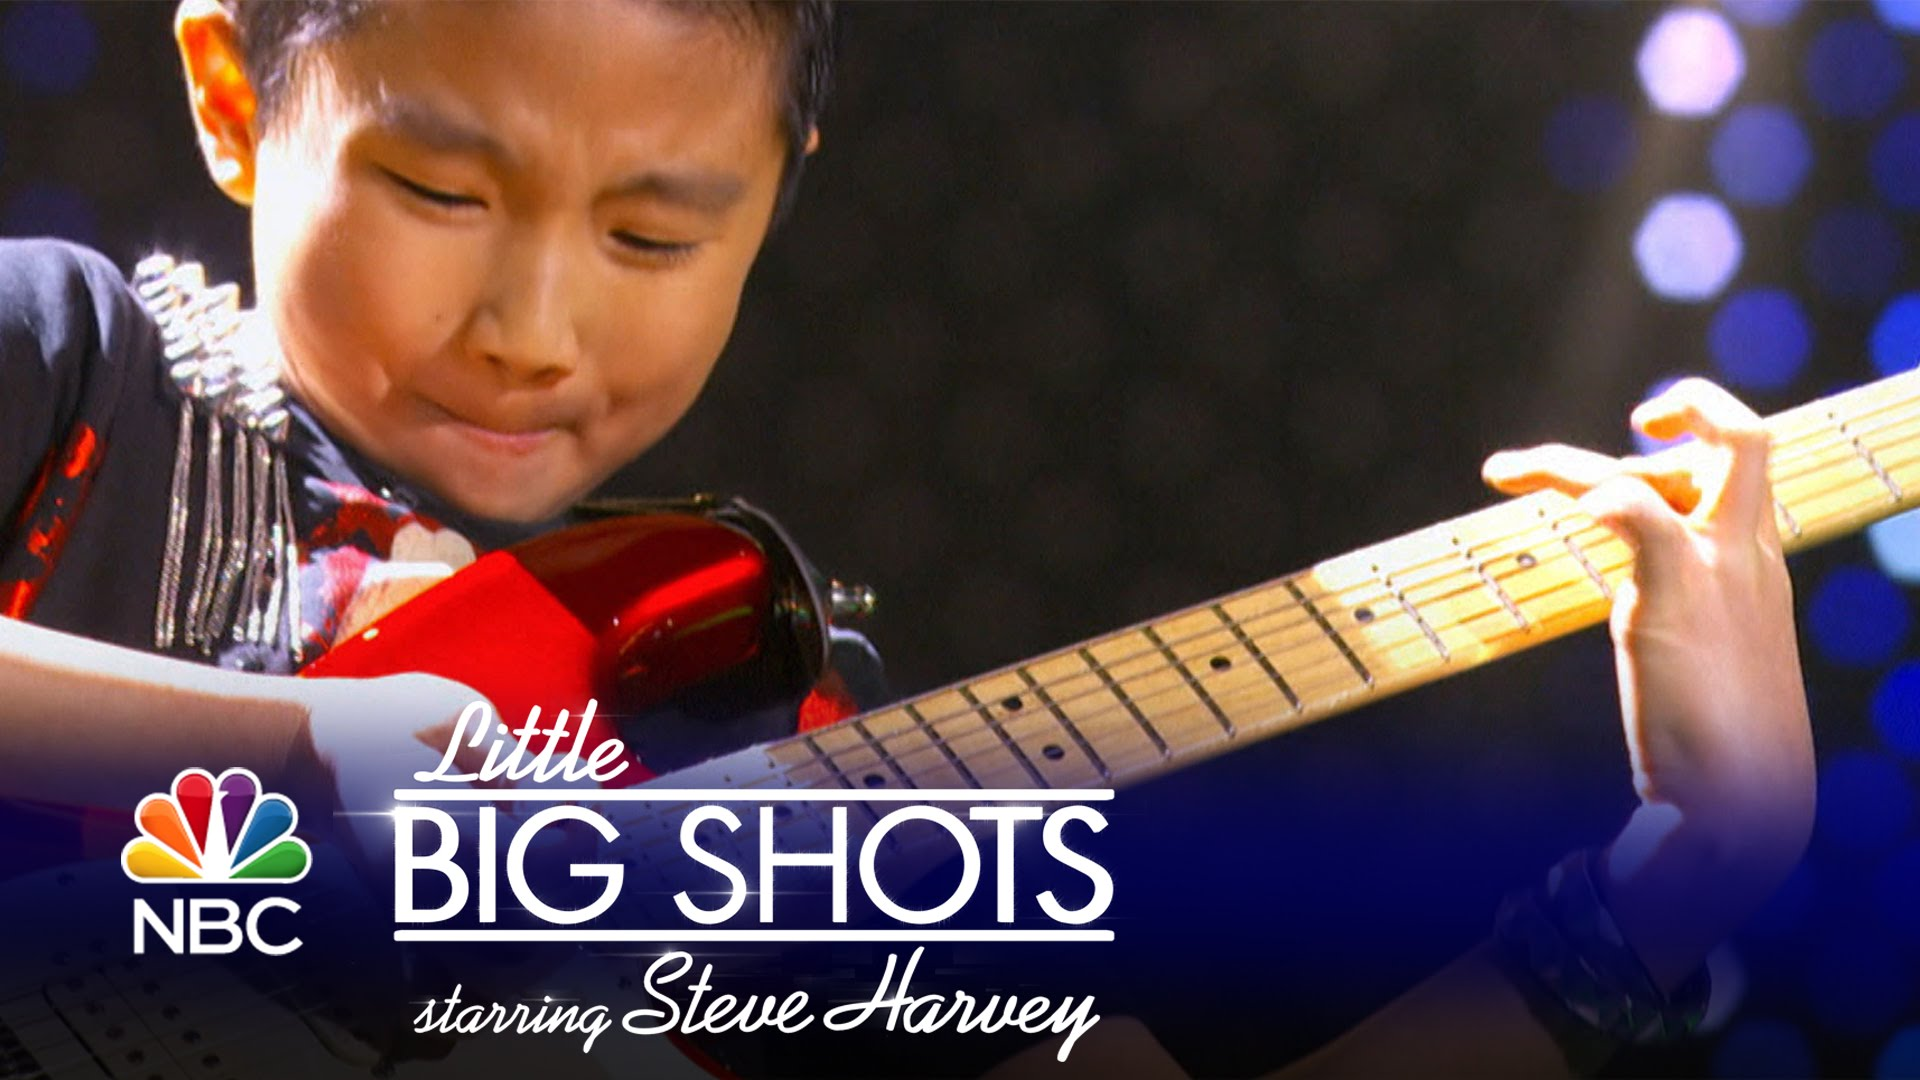 Little Big Shots – Best of the Rest